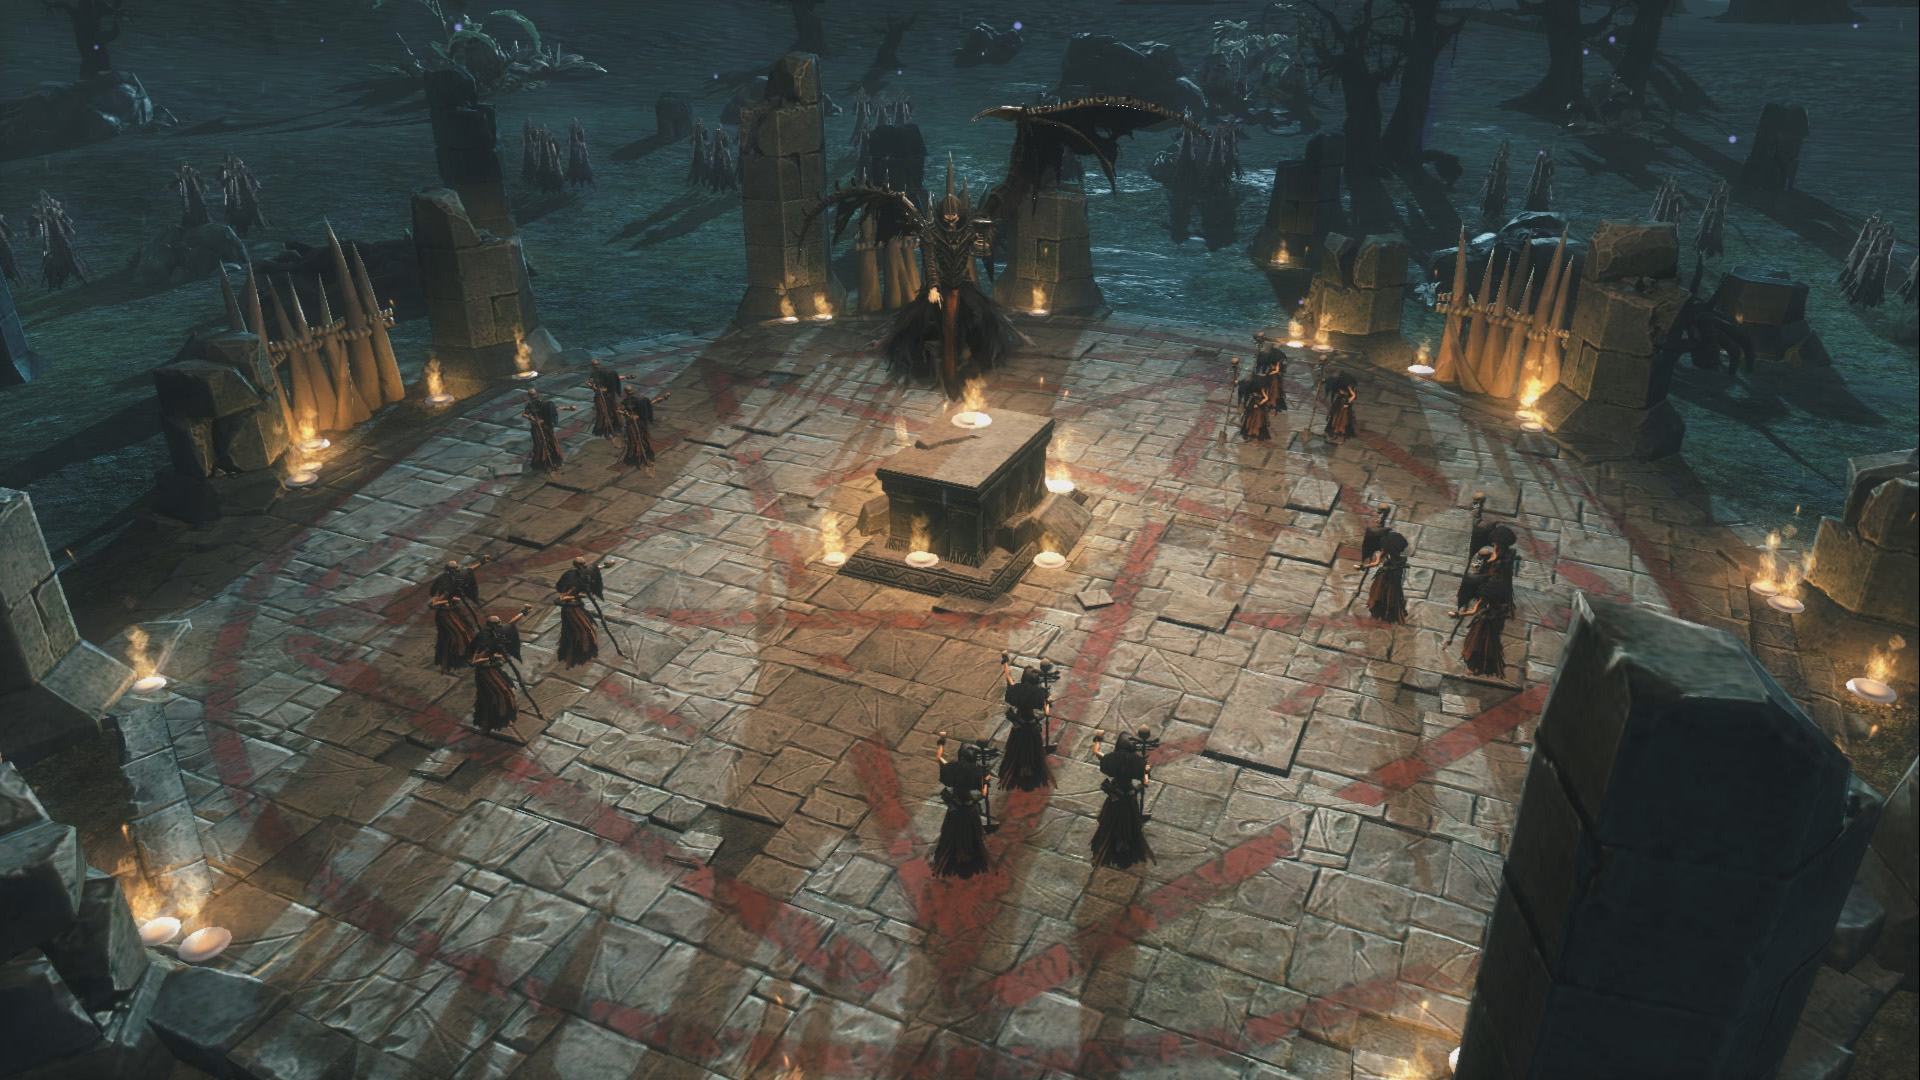 stategy_rpg_age_of_wonders_3_eternal_lords_expansion_necromantic_circle_screenshot